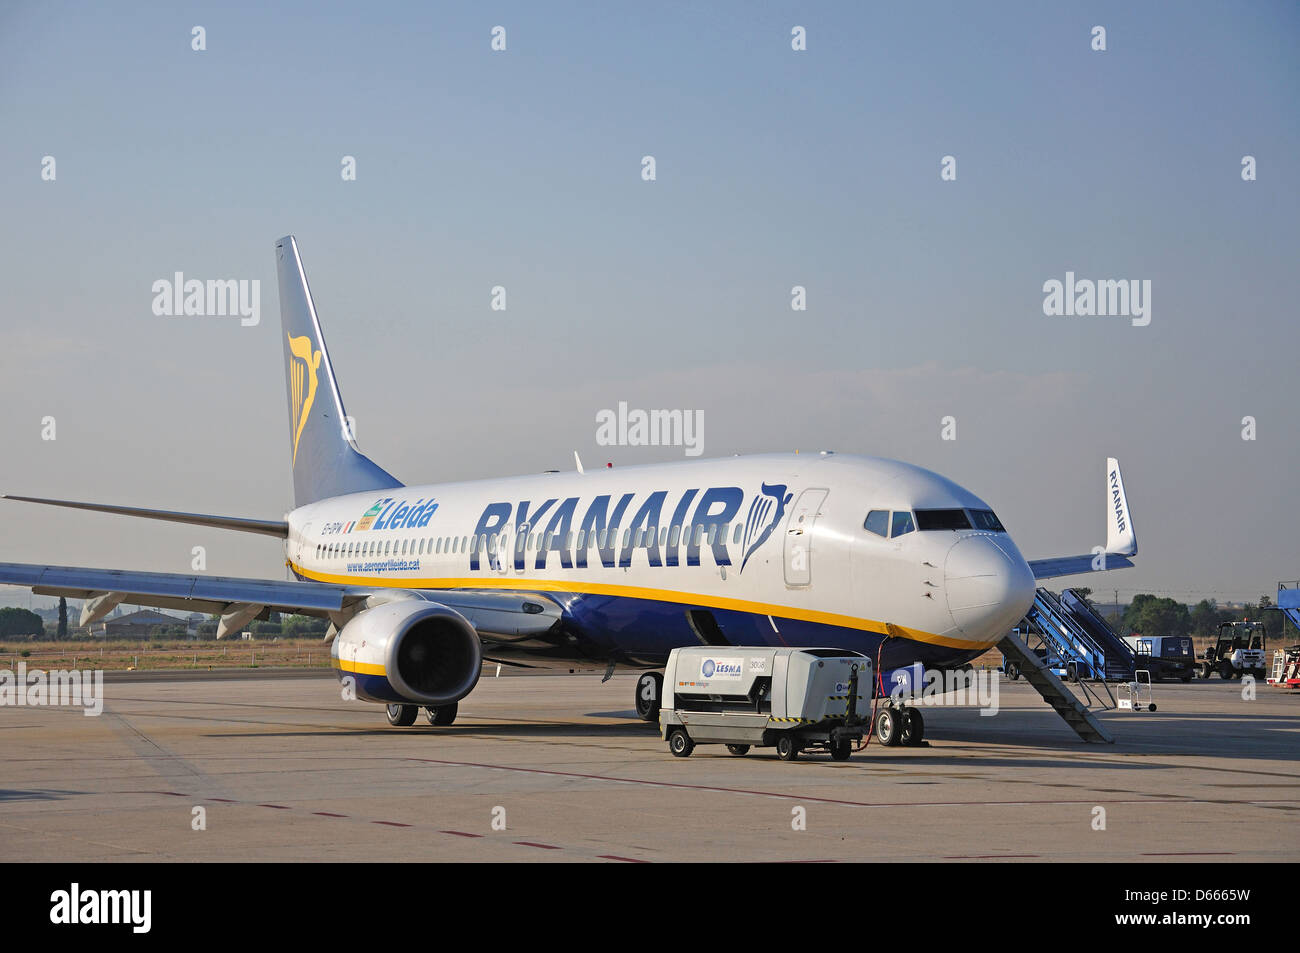 Ryanair Boeing 737-8AS aircraft on tarmac, Lleida-Alguaire Airport, Lleida, Catalonia, Spain - Stock Image